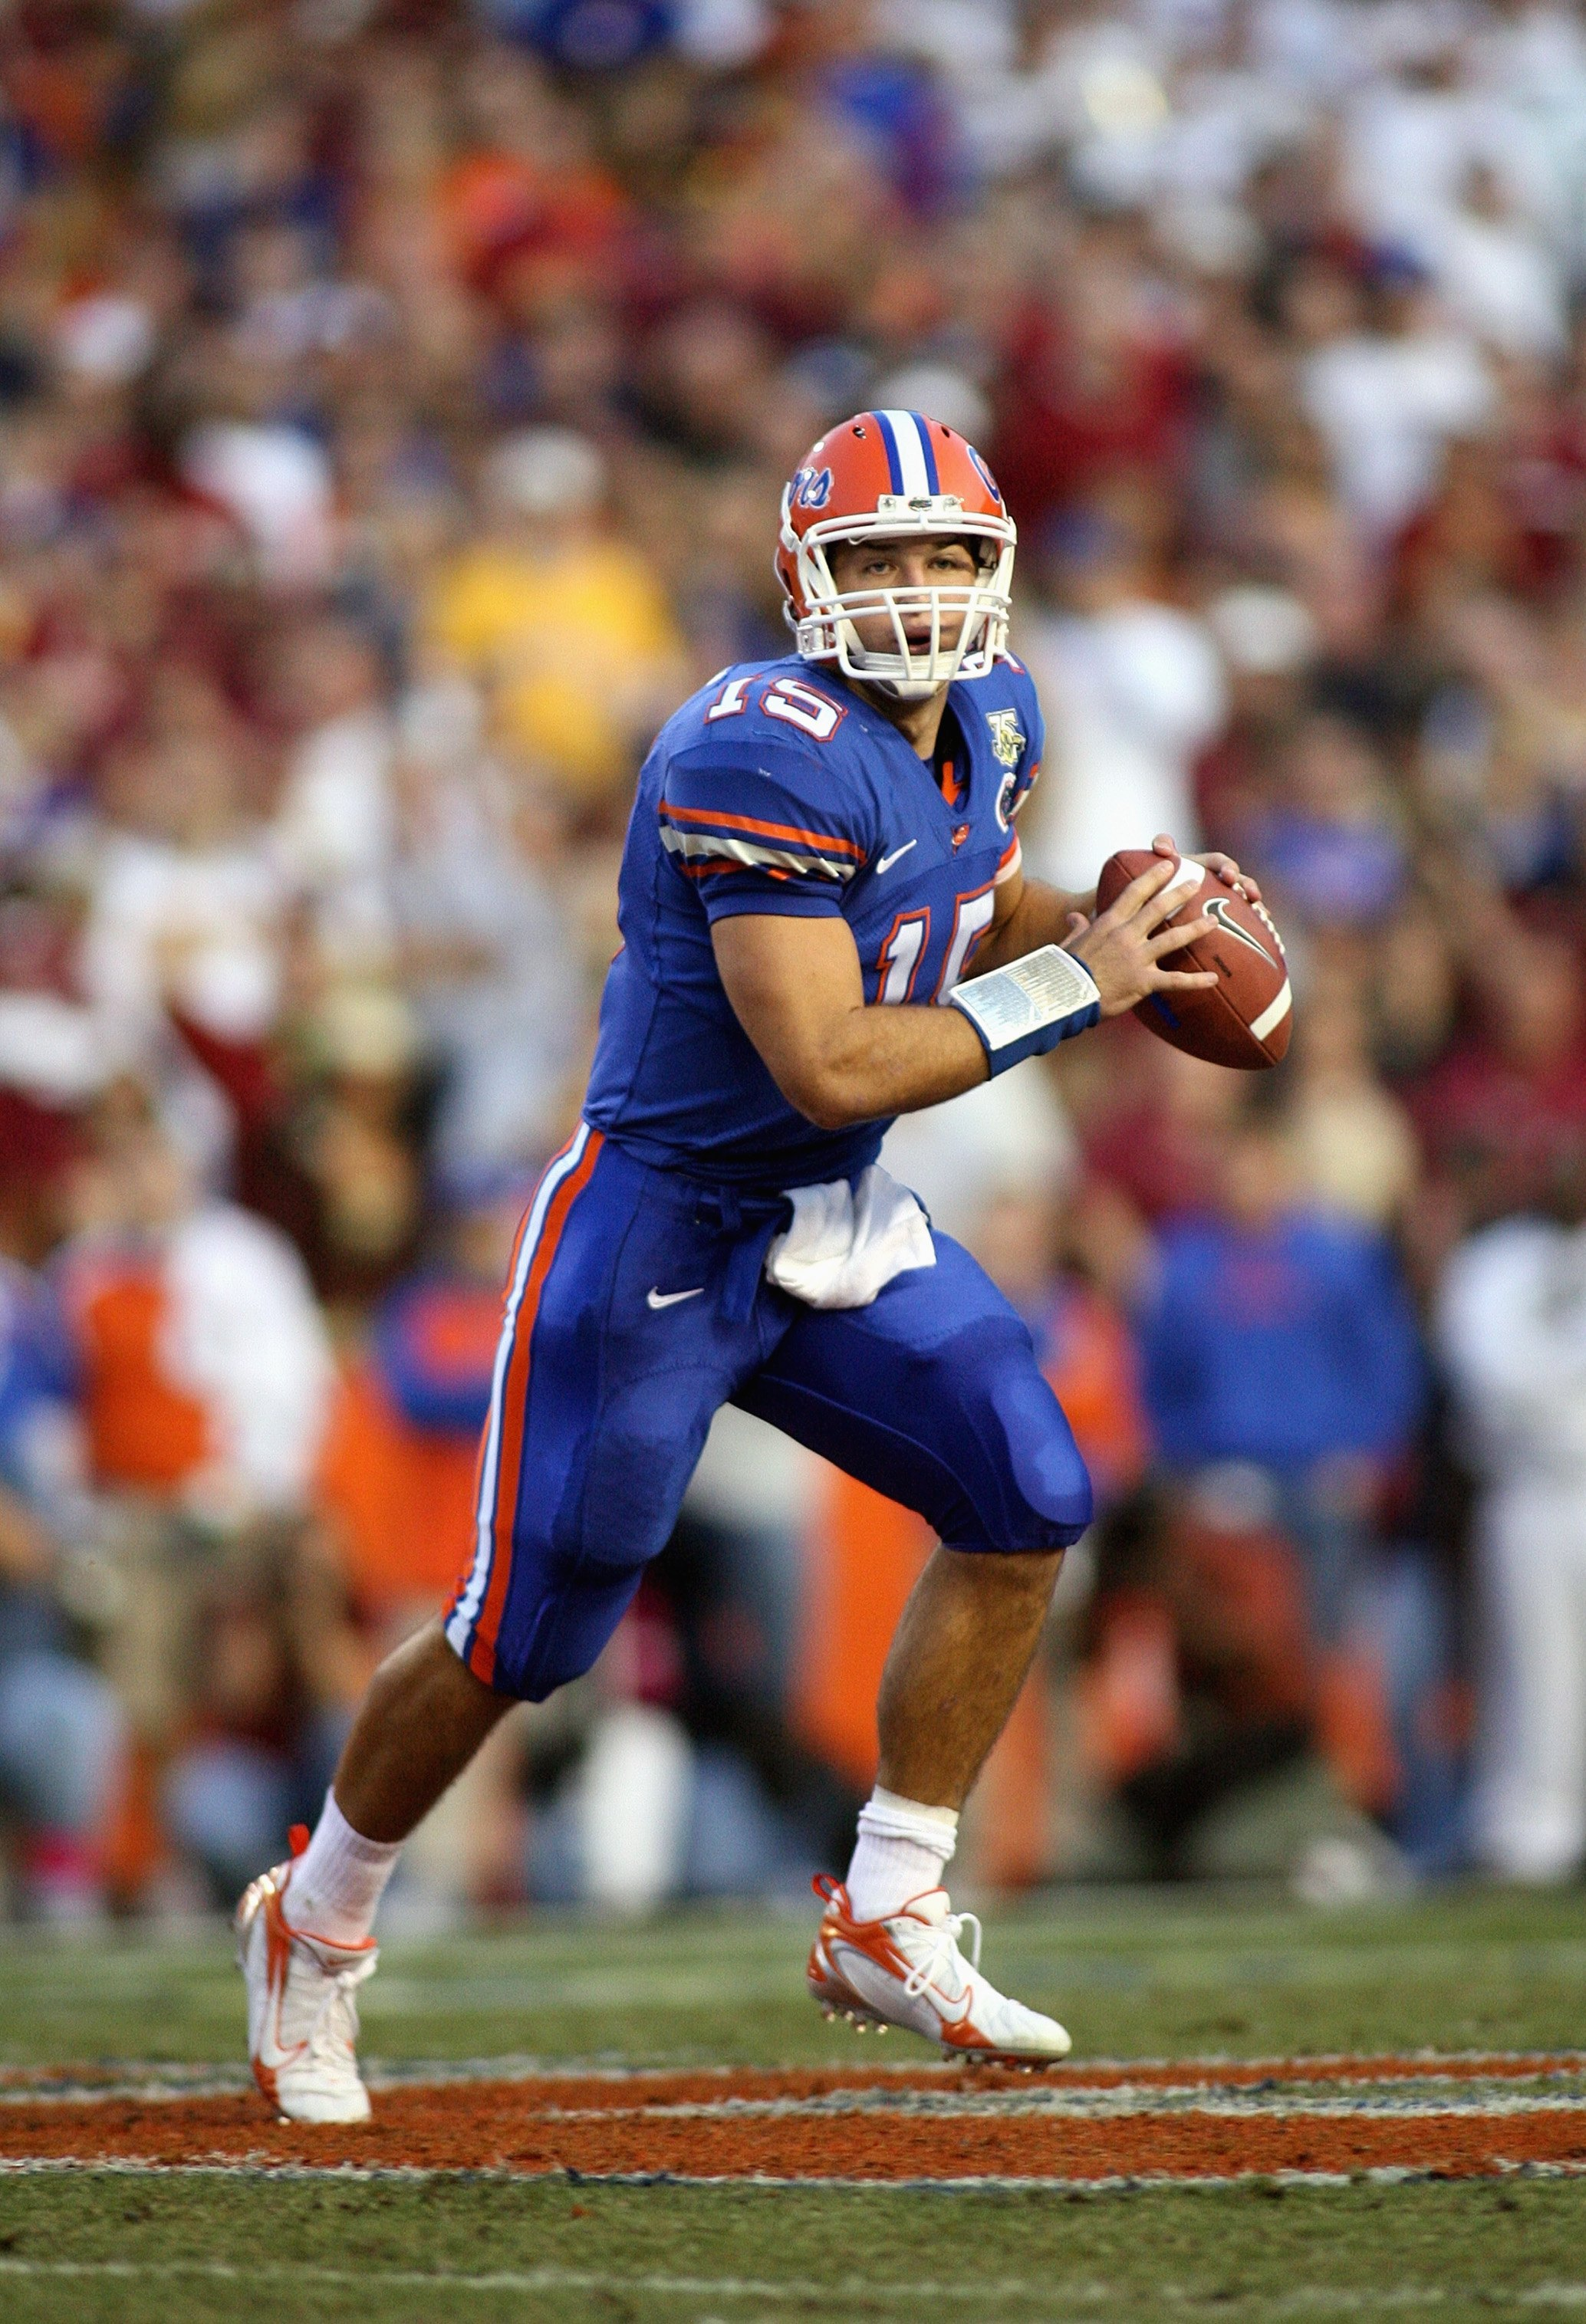 GAINESVILLE, FL - NOVEMBER 24: Quarterback Tim Tebow #15 of the Florida Gators rolls out against the Florida State Seminoles at Ben Hill Griffin Stadium November 24, 2007 in Gainesville, Florida. (Photo by Marc Serota/Getty Images)